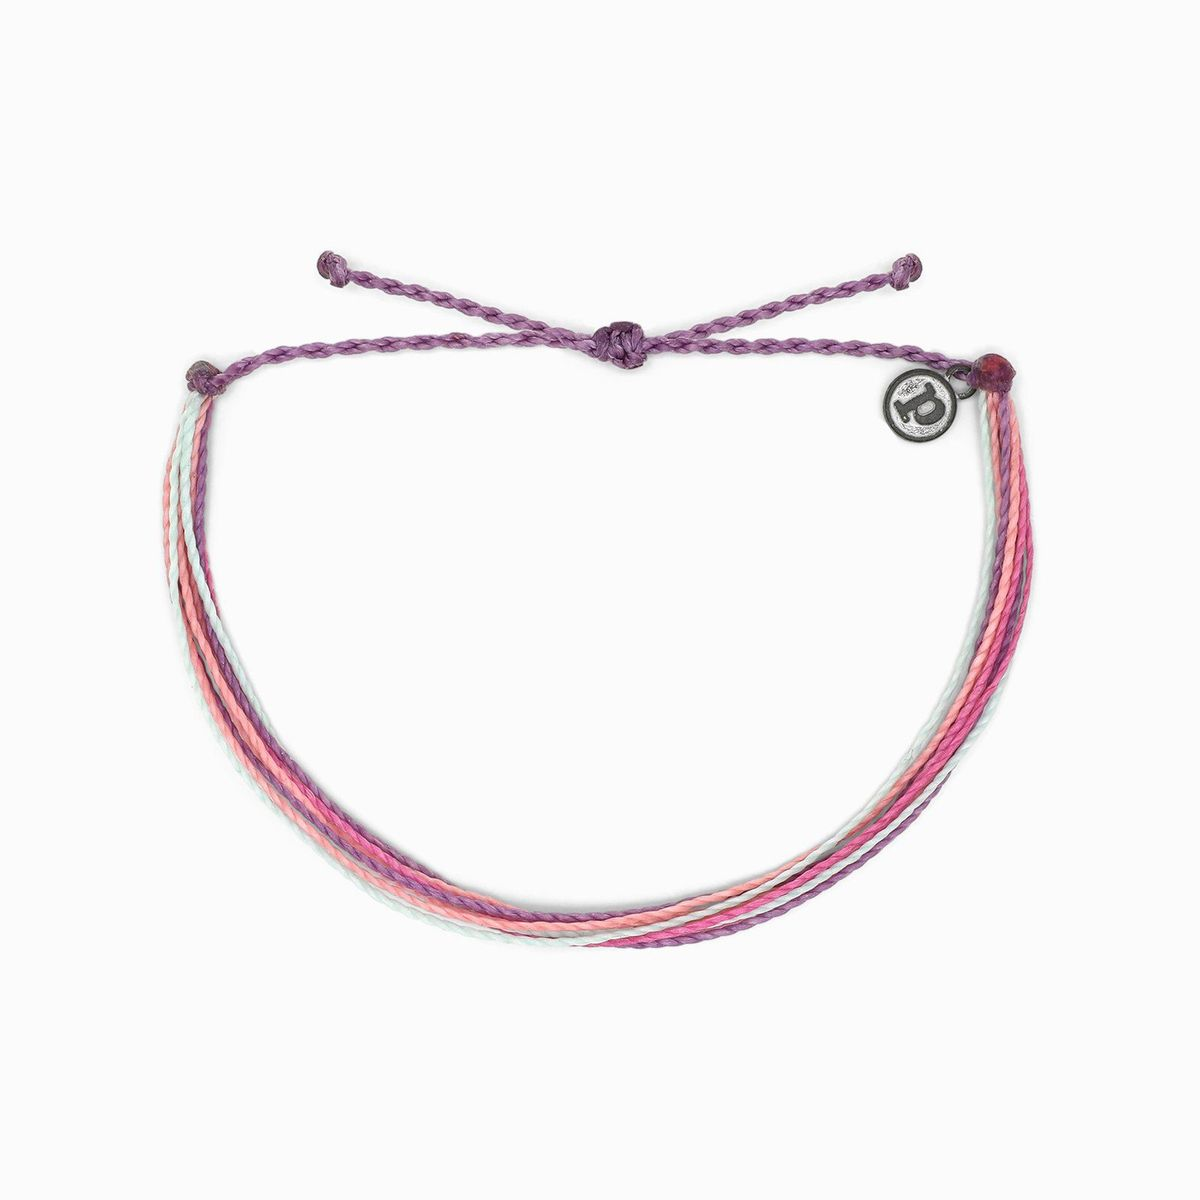 Daybreak Originals Anklet by Pura Vida